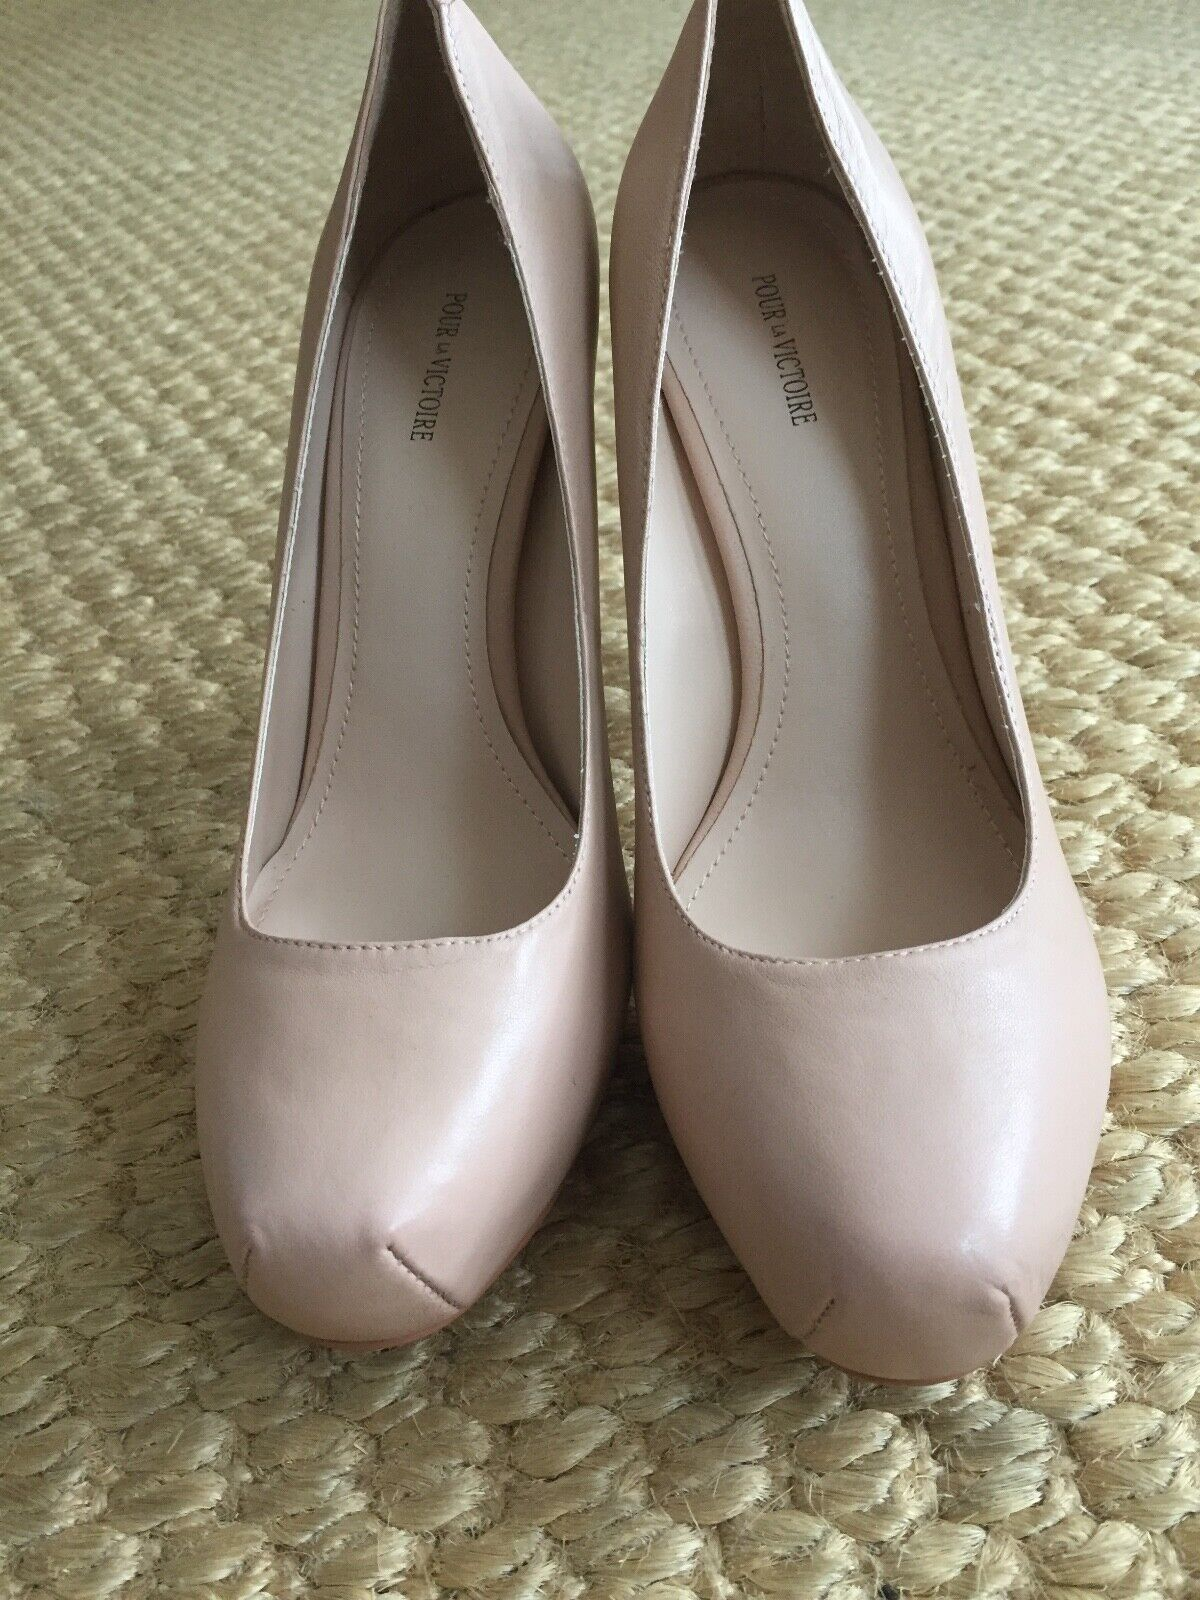 250 Pour La Victoire Gilliana Beige Nappa Pumps Women's 8 Medium